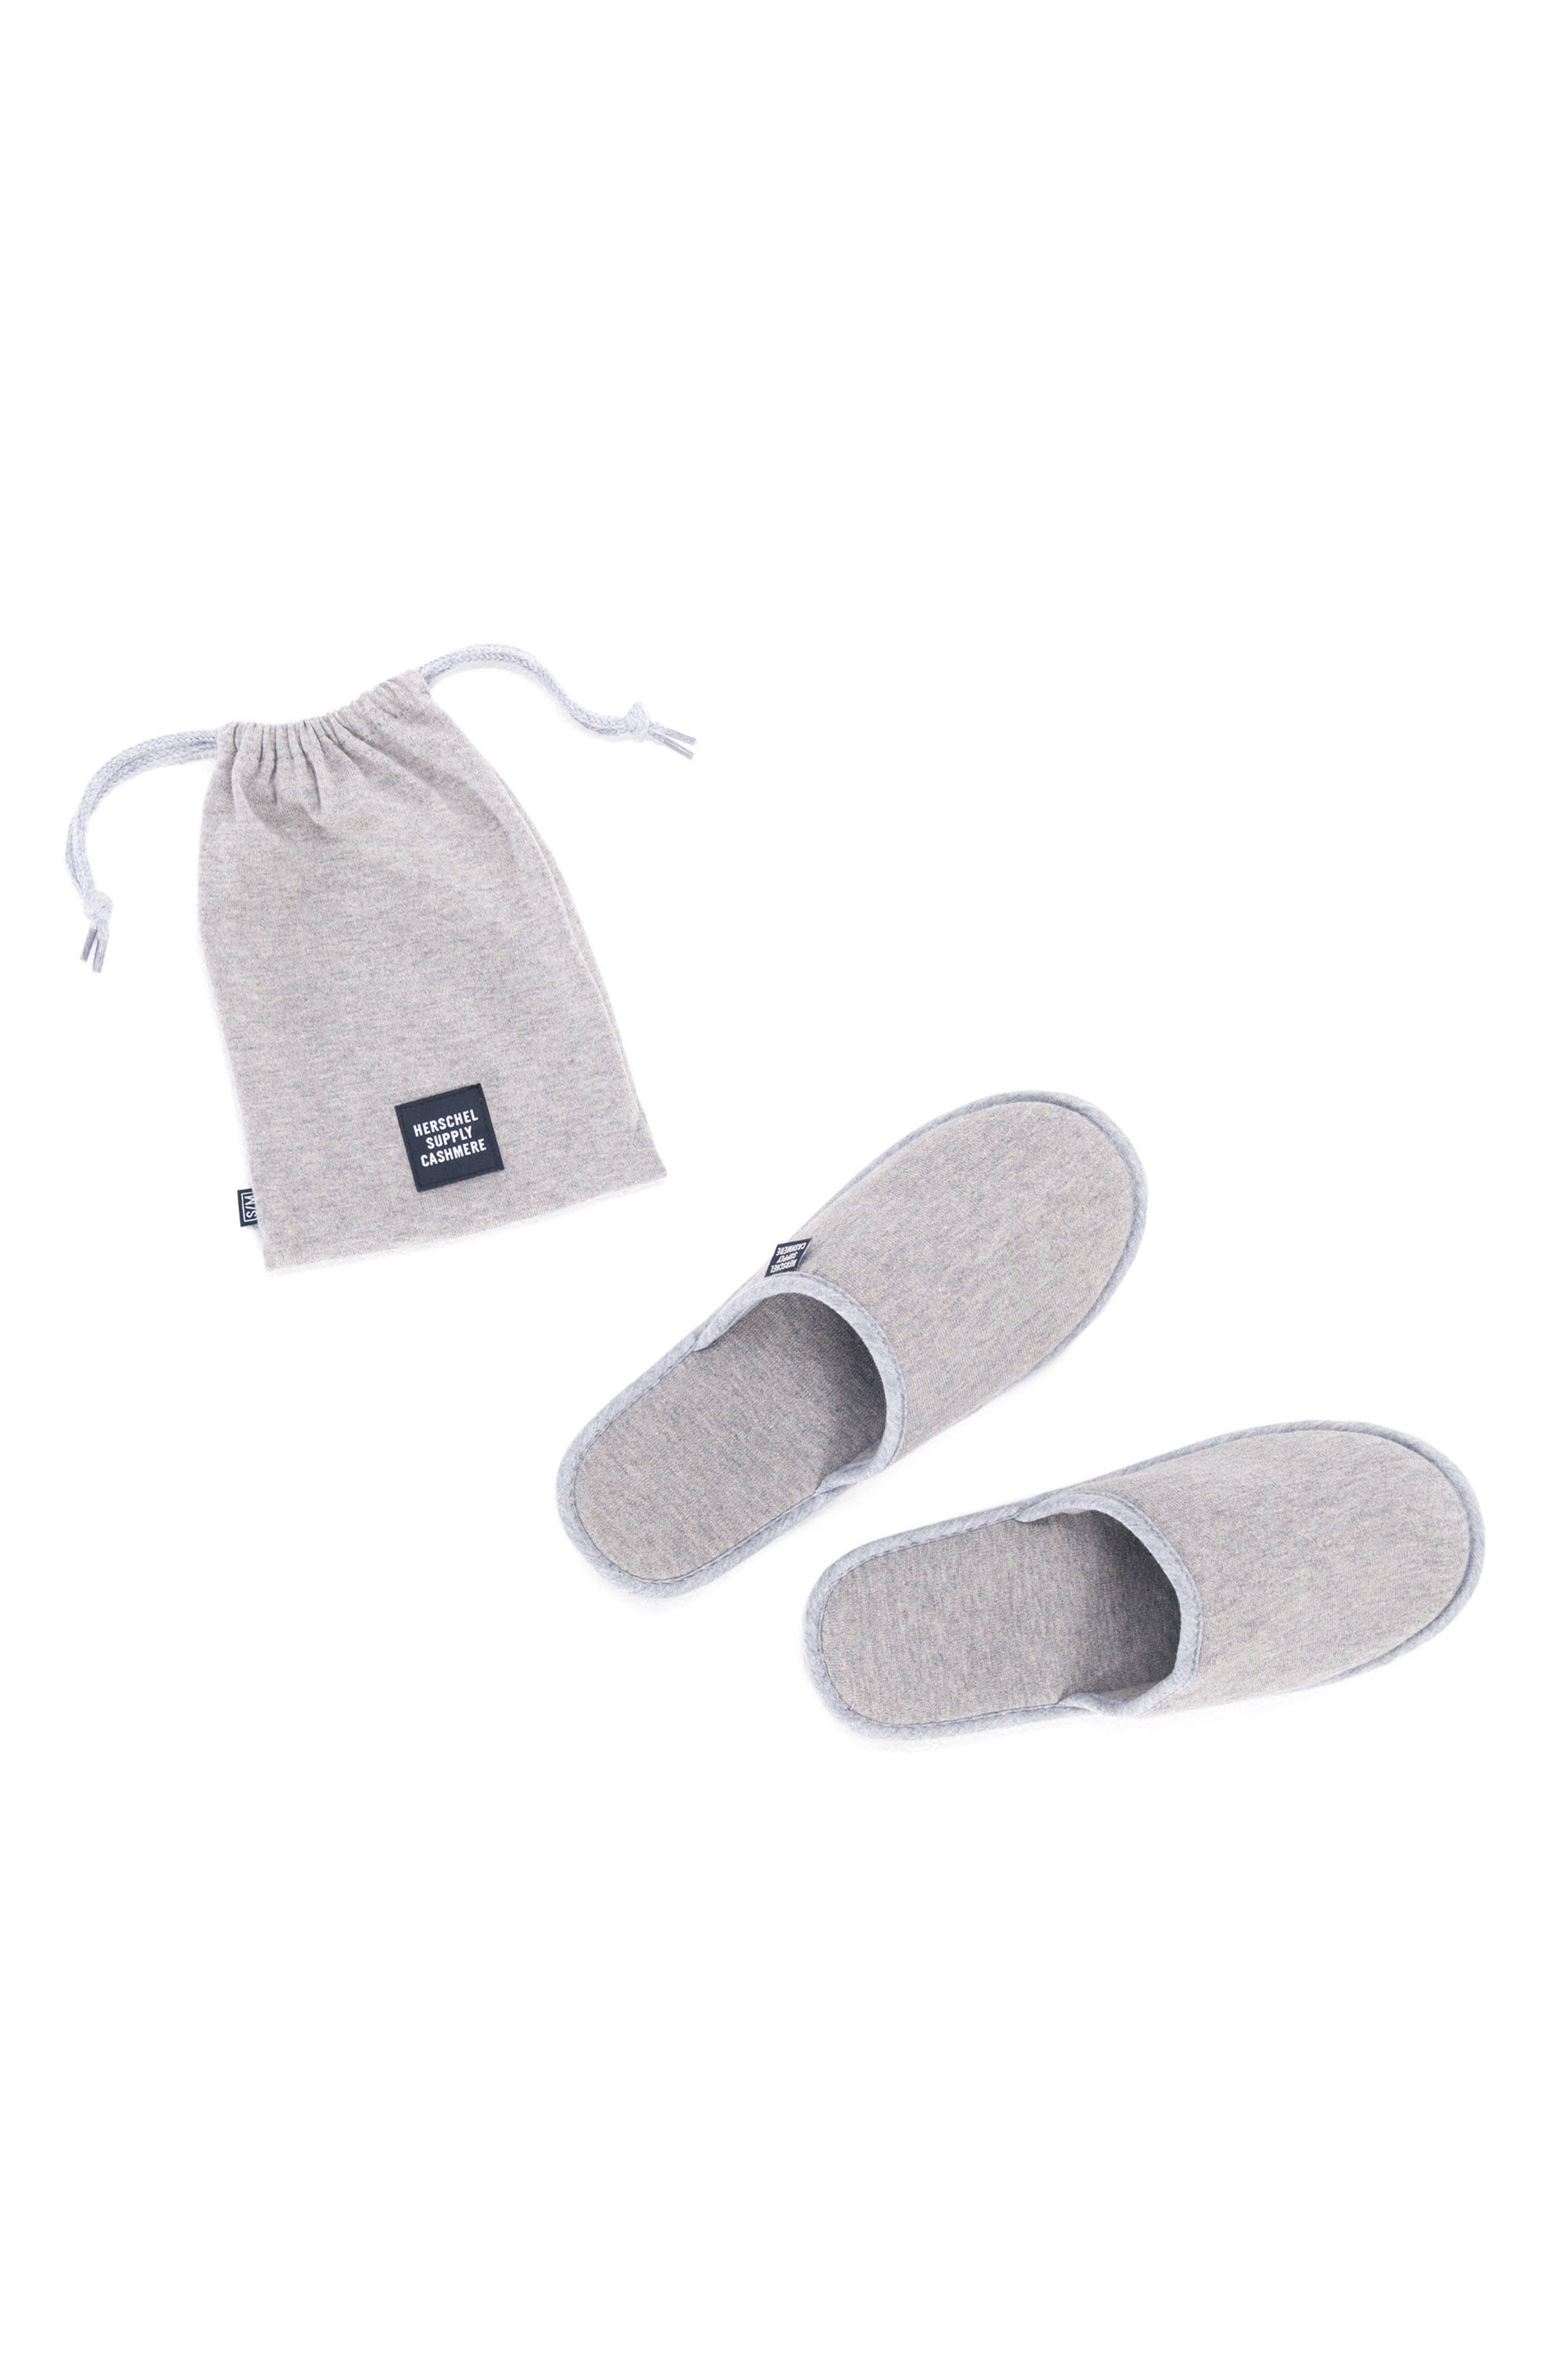 Cashmere Slippers,                             Main thumbnail 1, color,                             HEATHERED GREY